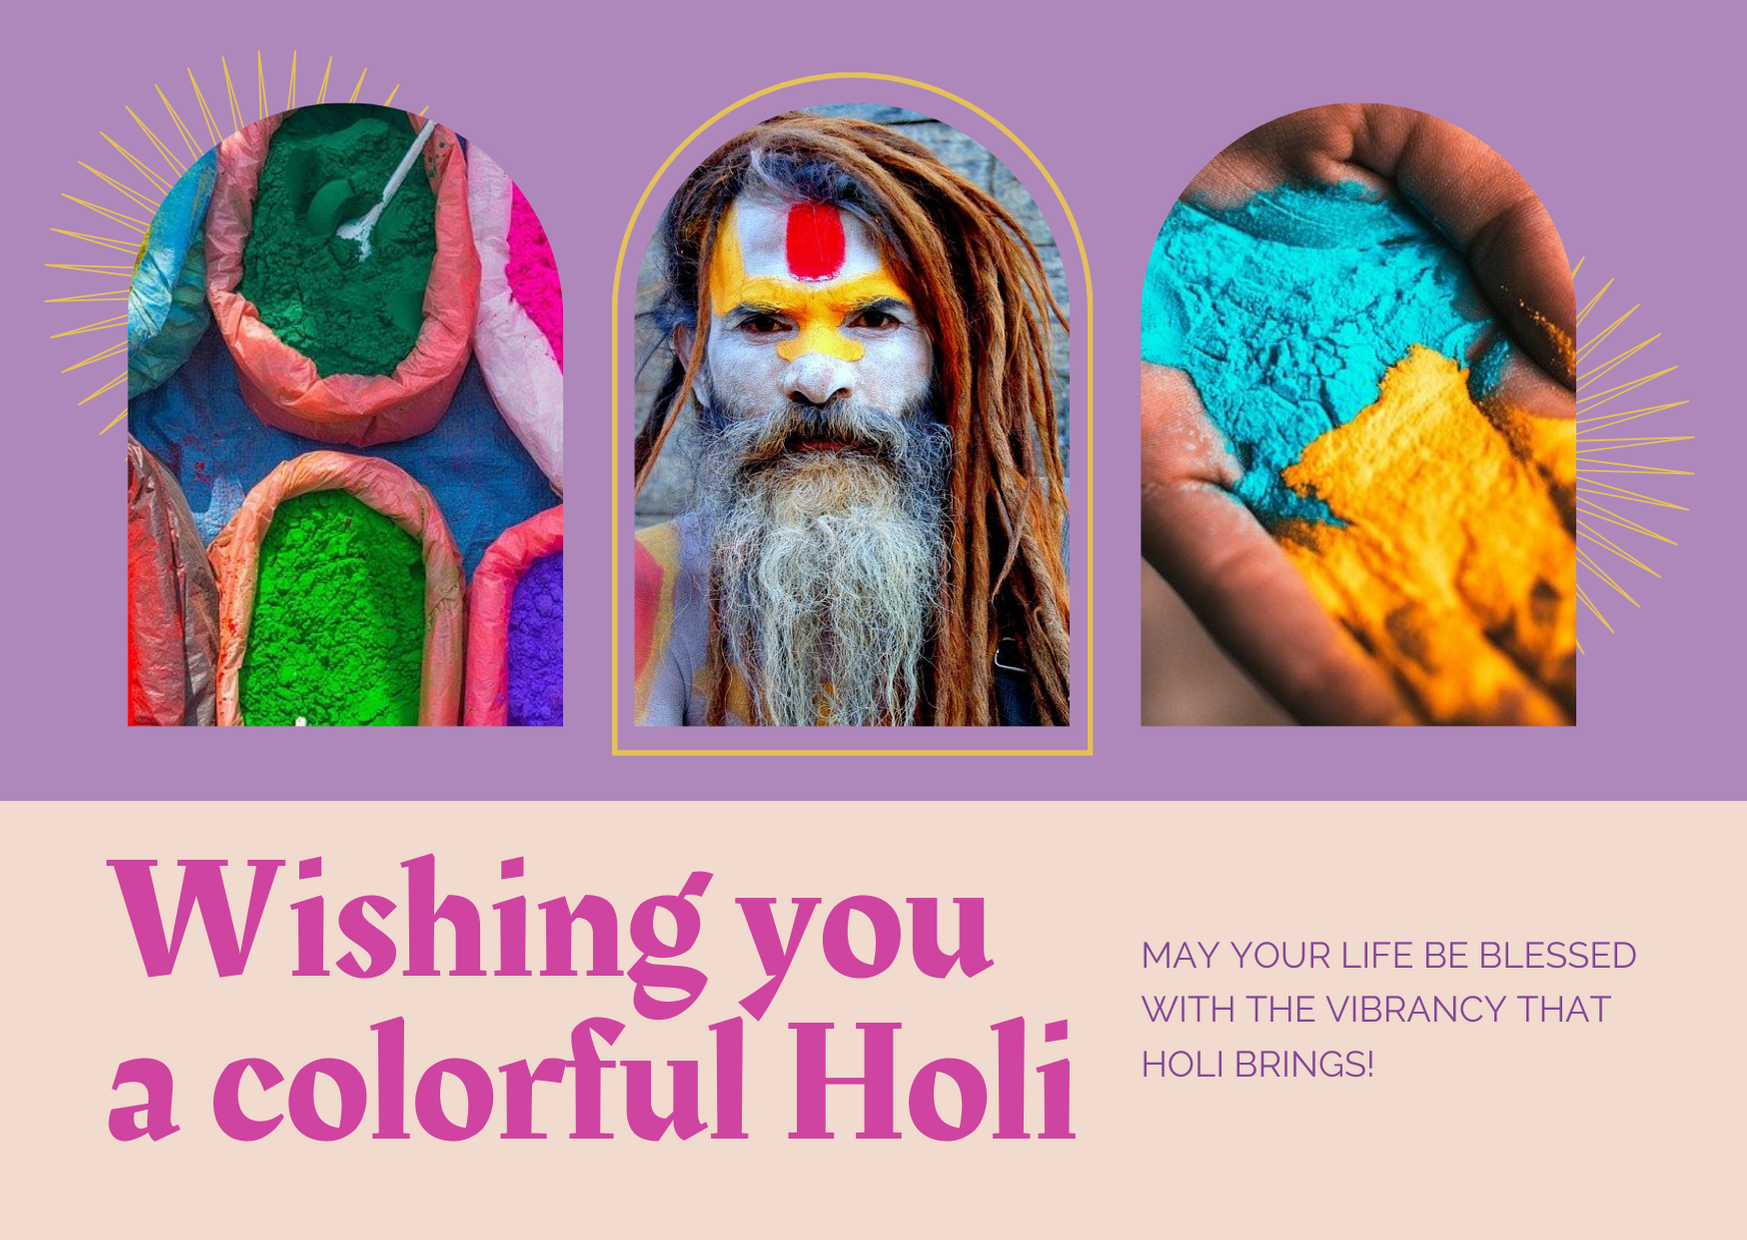 Wishing our readers a very Happy and Safe Holi